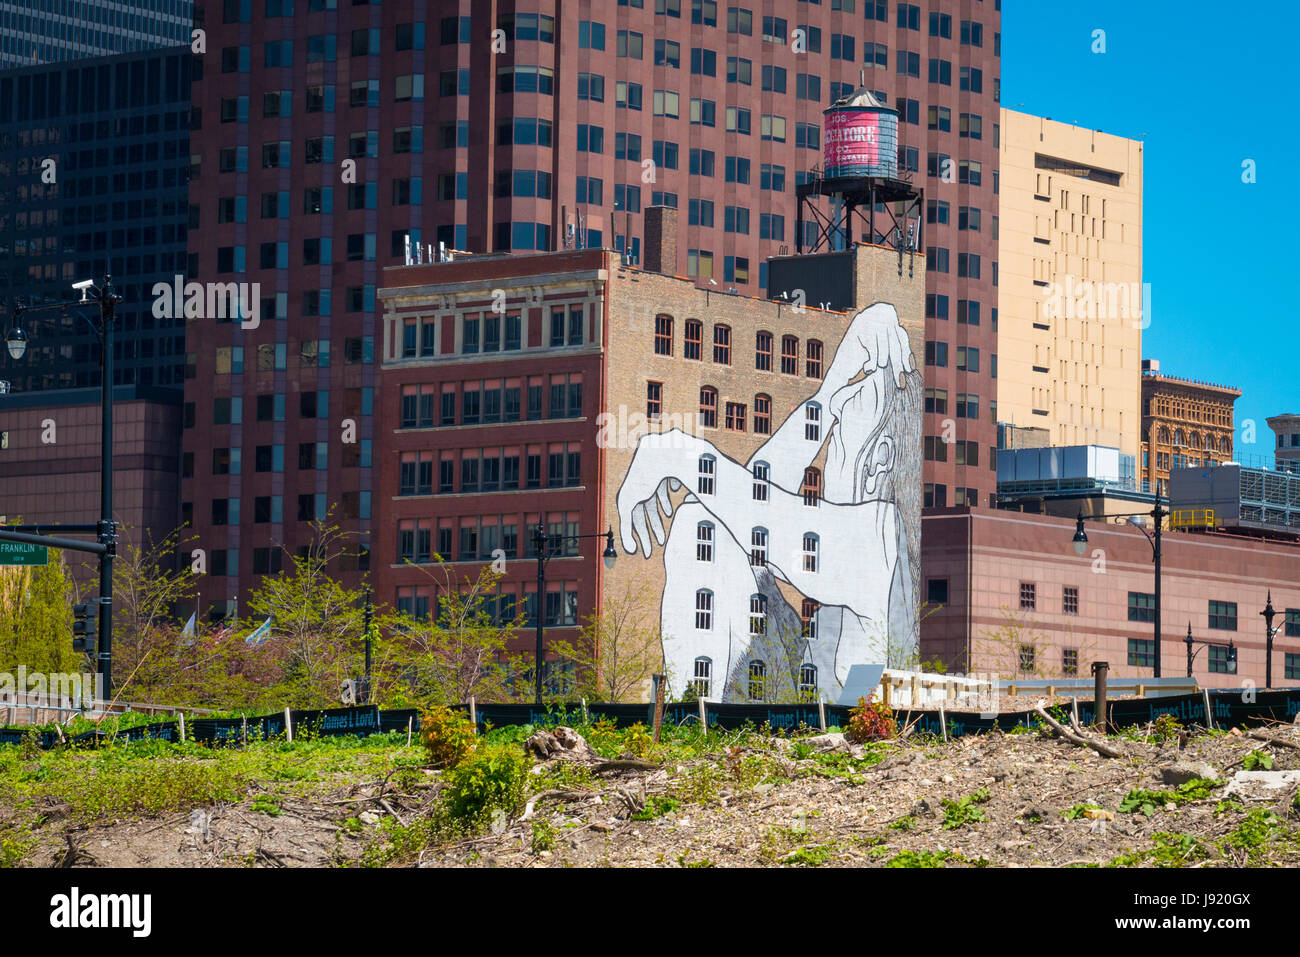 View Chicago River Illinois Downtown riverside buildings old high-rise low-rise large graffiti seated figure water Stock Photo